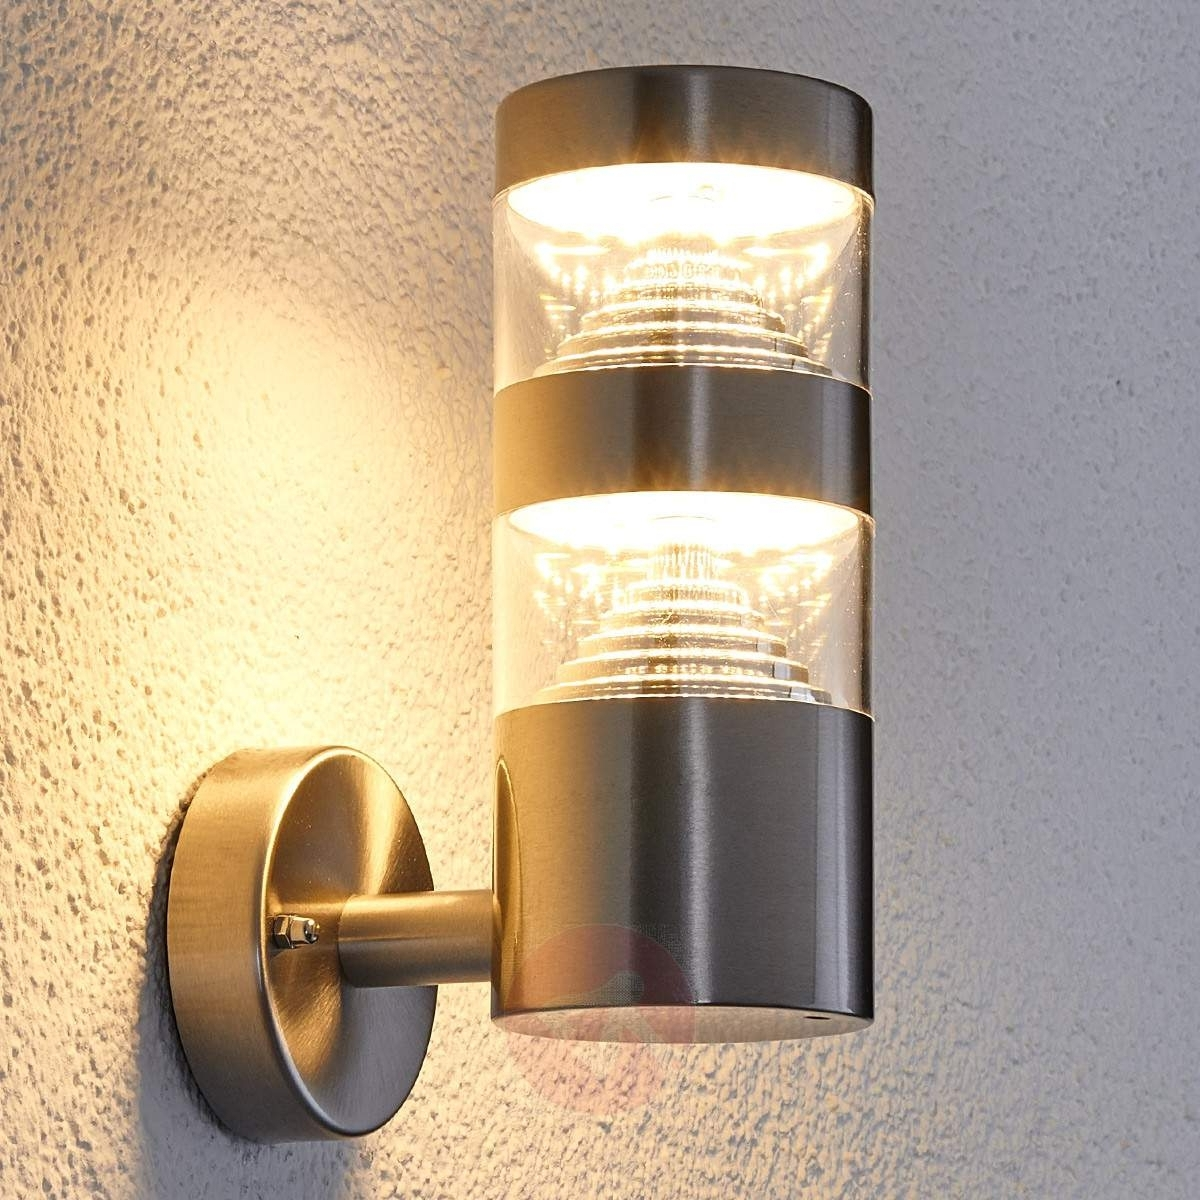 Outdoor Exterior Wall Lighting For 2019 4 : Exterior Wall Lights Inside Finest Kichler 11251Azt (View 8 of 20)